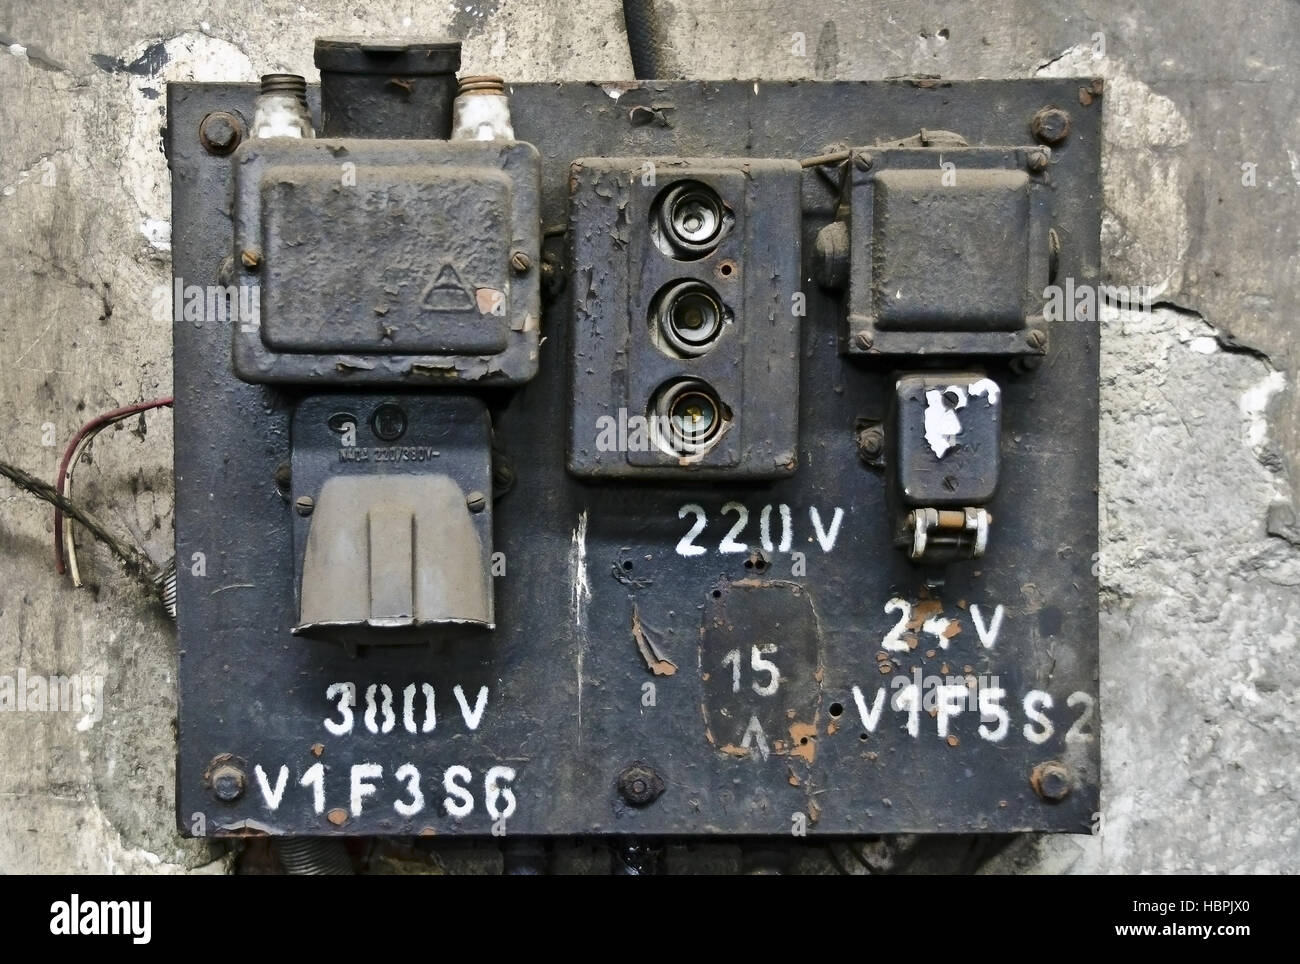 hight resolution of old electric fuse panel